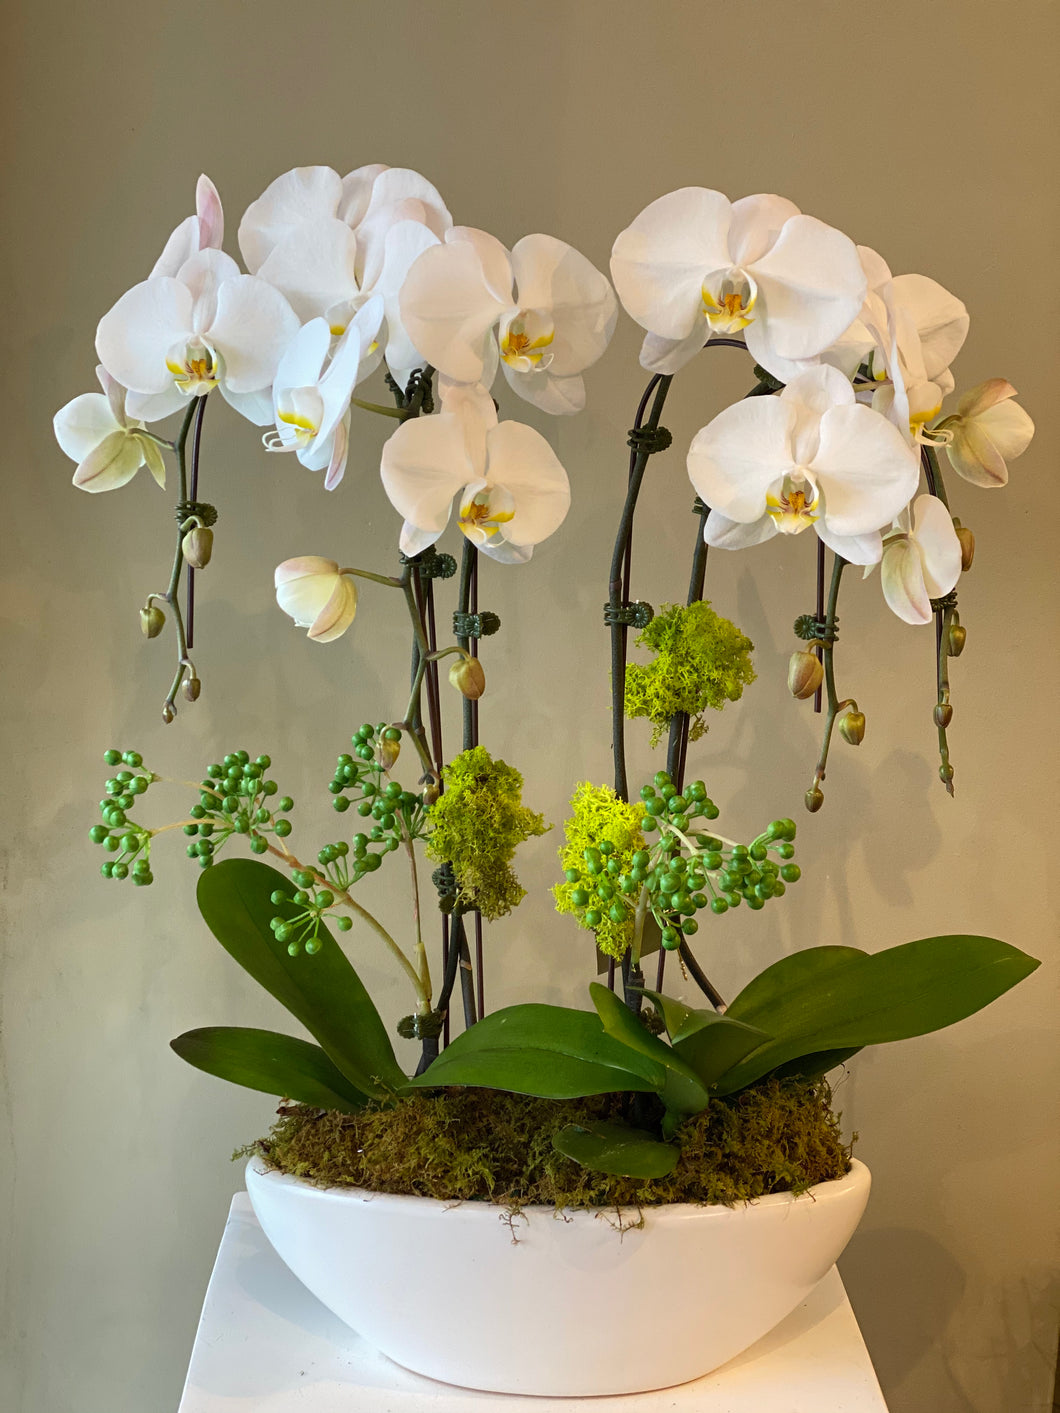 P11 - Modern White Orchid Arrangement - Flowerplustoronto